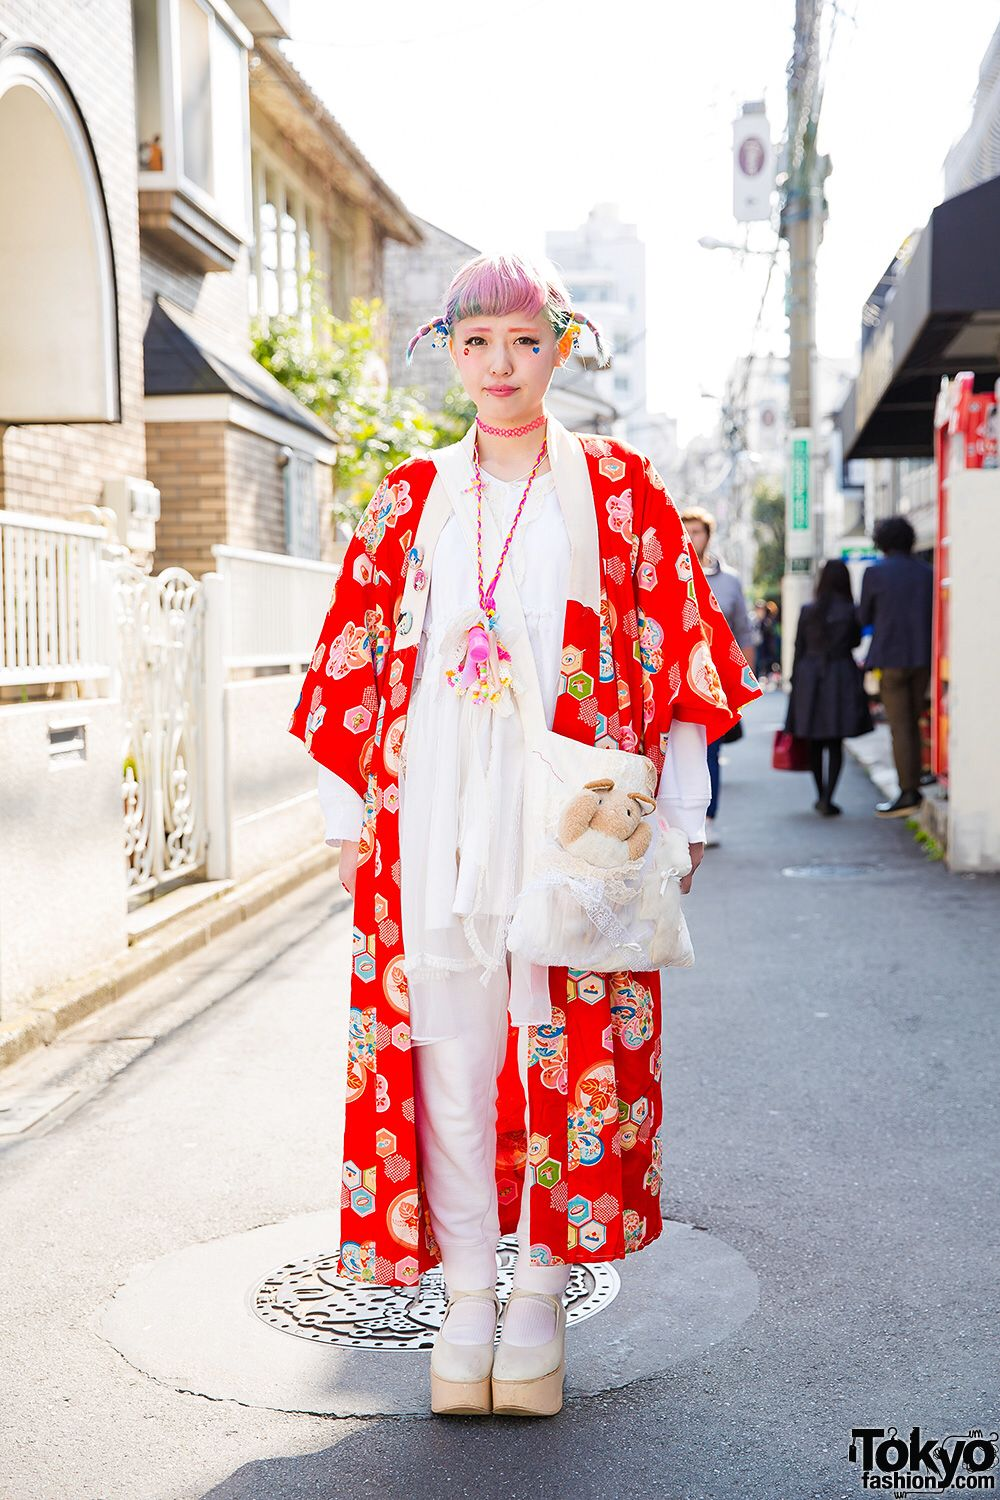 21-year-old Am on the street in Harajuku wearing a resale kimono over a Gunifuni babydoll top, Tokyo Bopper platforms, a handmade bag, and anime/manga accessories.